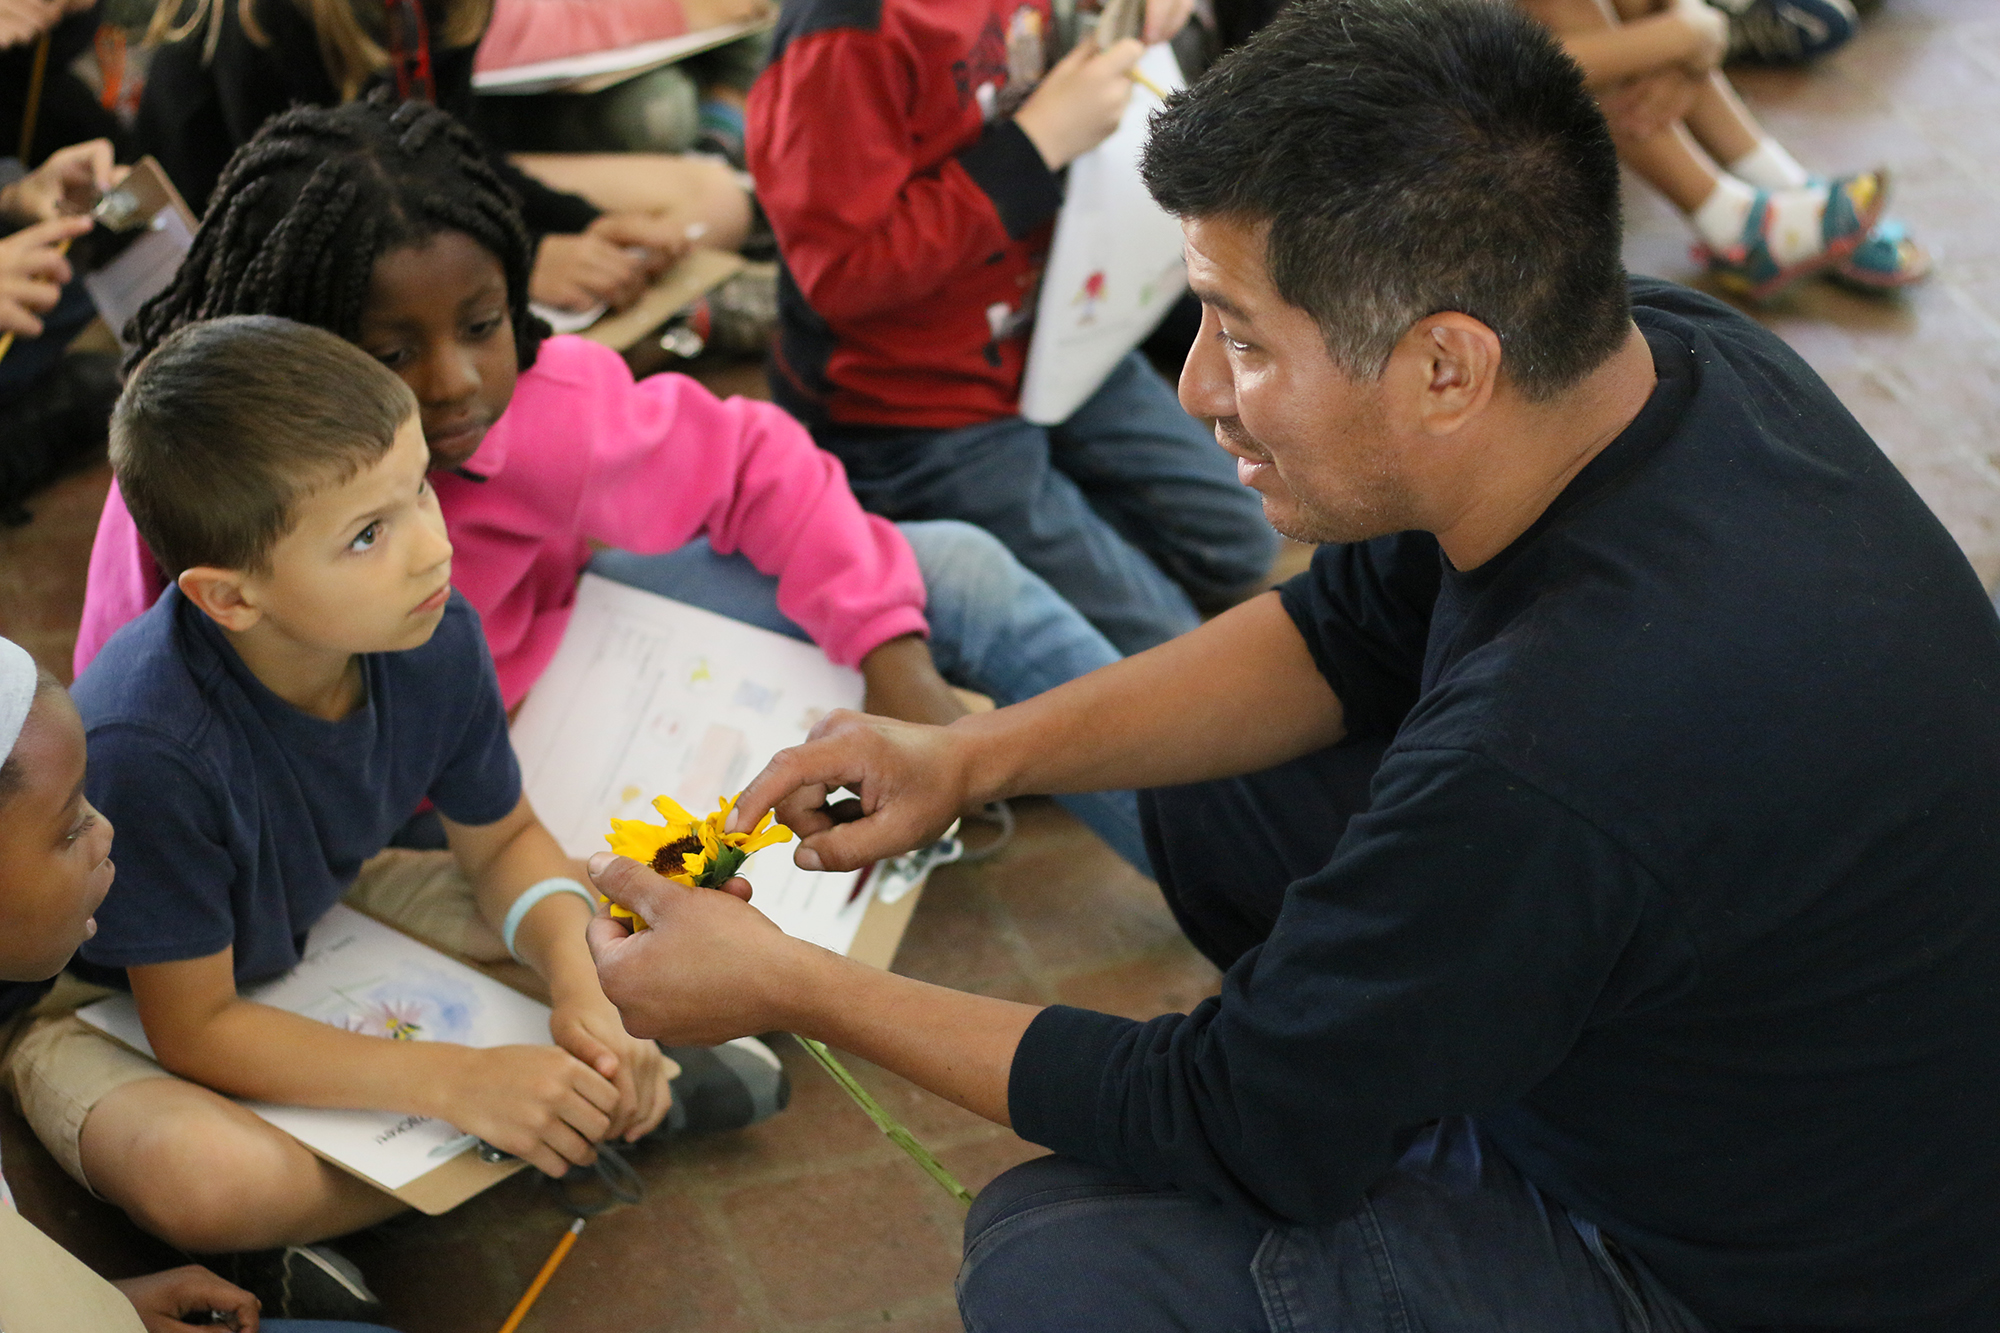 Luis Marmol teaching with sunflower